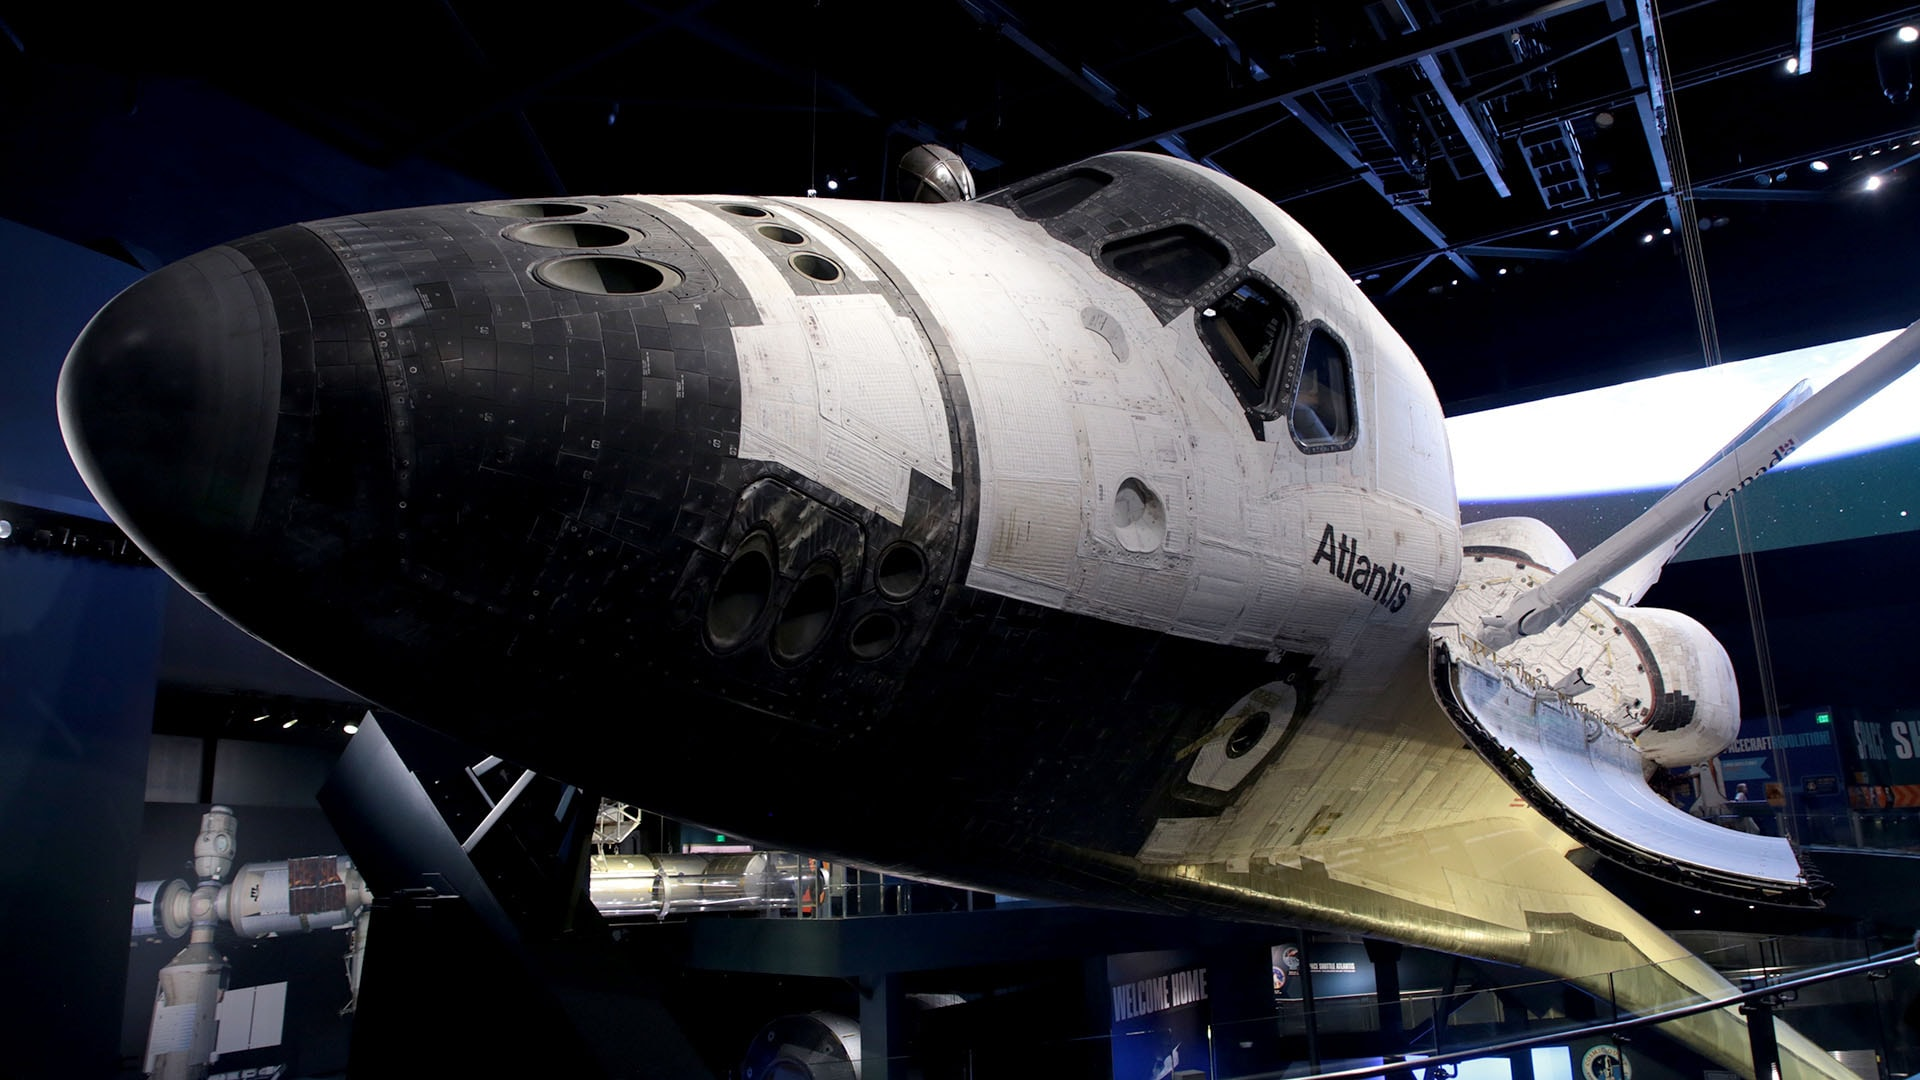 Atlantis was the last shuttle to go into space, launching on July 8, 2011.